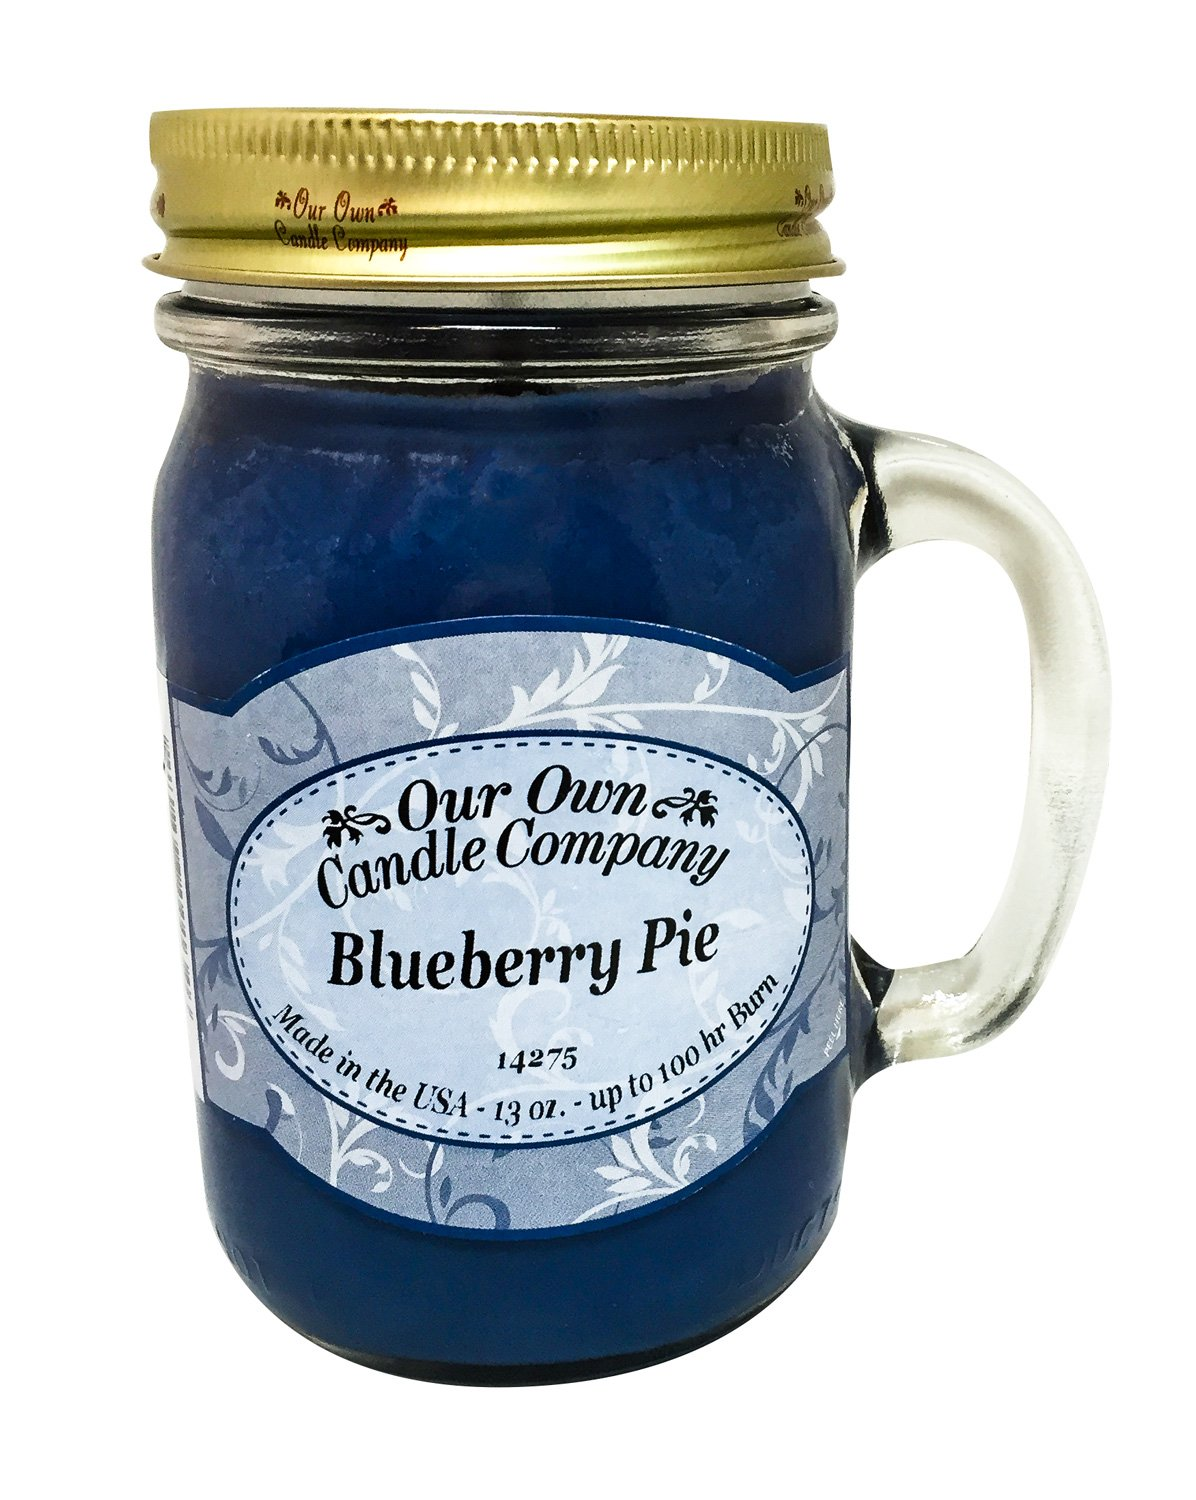 Our Own Candle Company Blueberry Pie Scented 13 oz Mason Jar Candle - Made in The USA